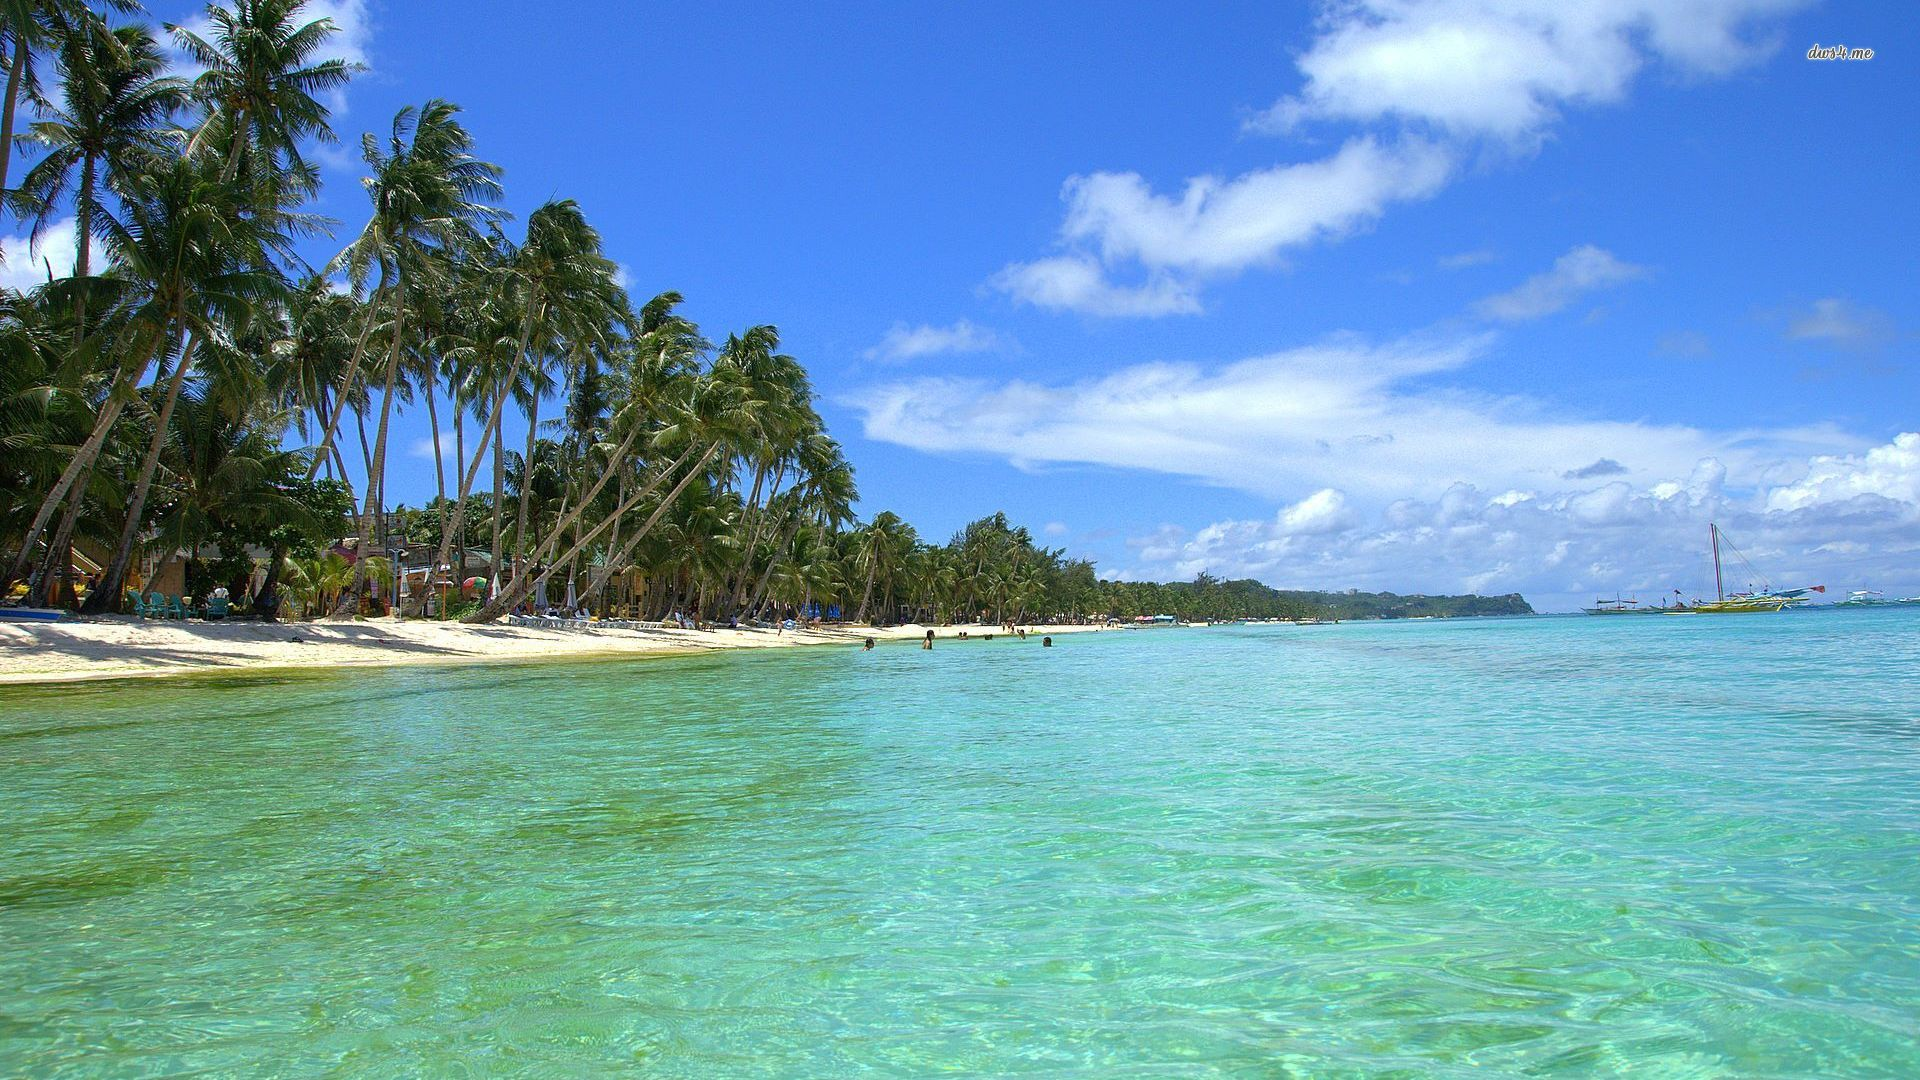 Tropical Beach Backgrounds Download HD Wallpapers 1920x1080